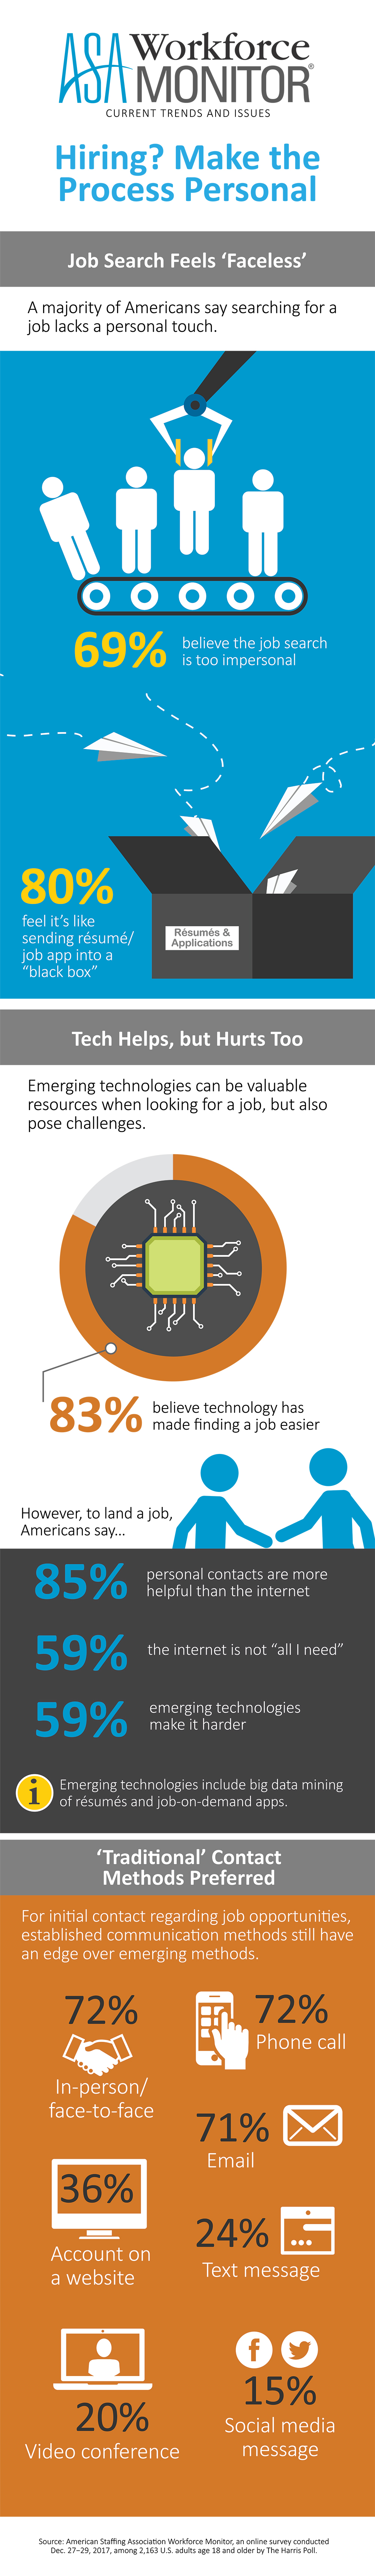 ASA Workforce Monitor—Job Search Methods and Preferences - American ...